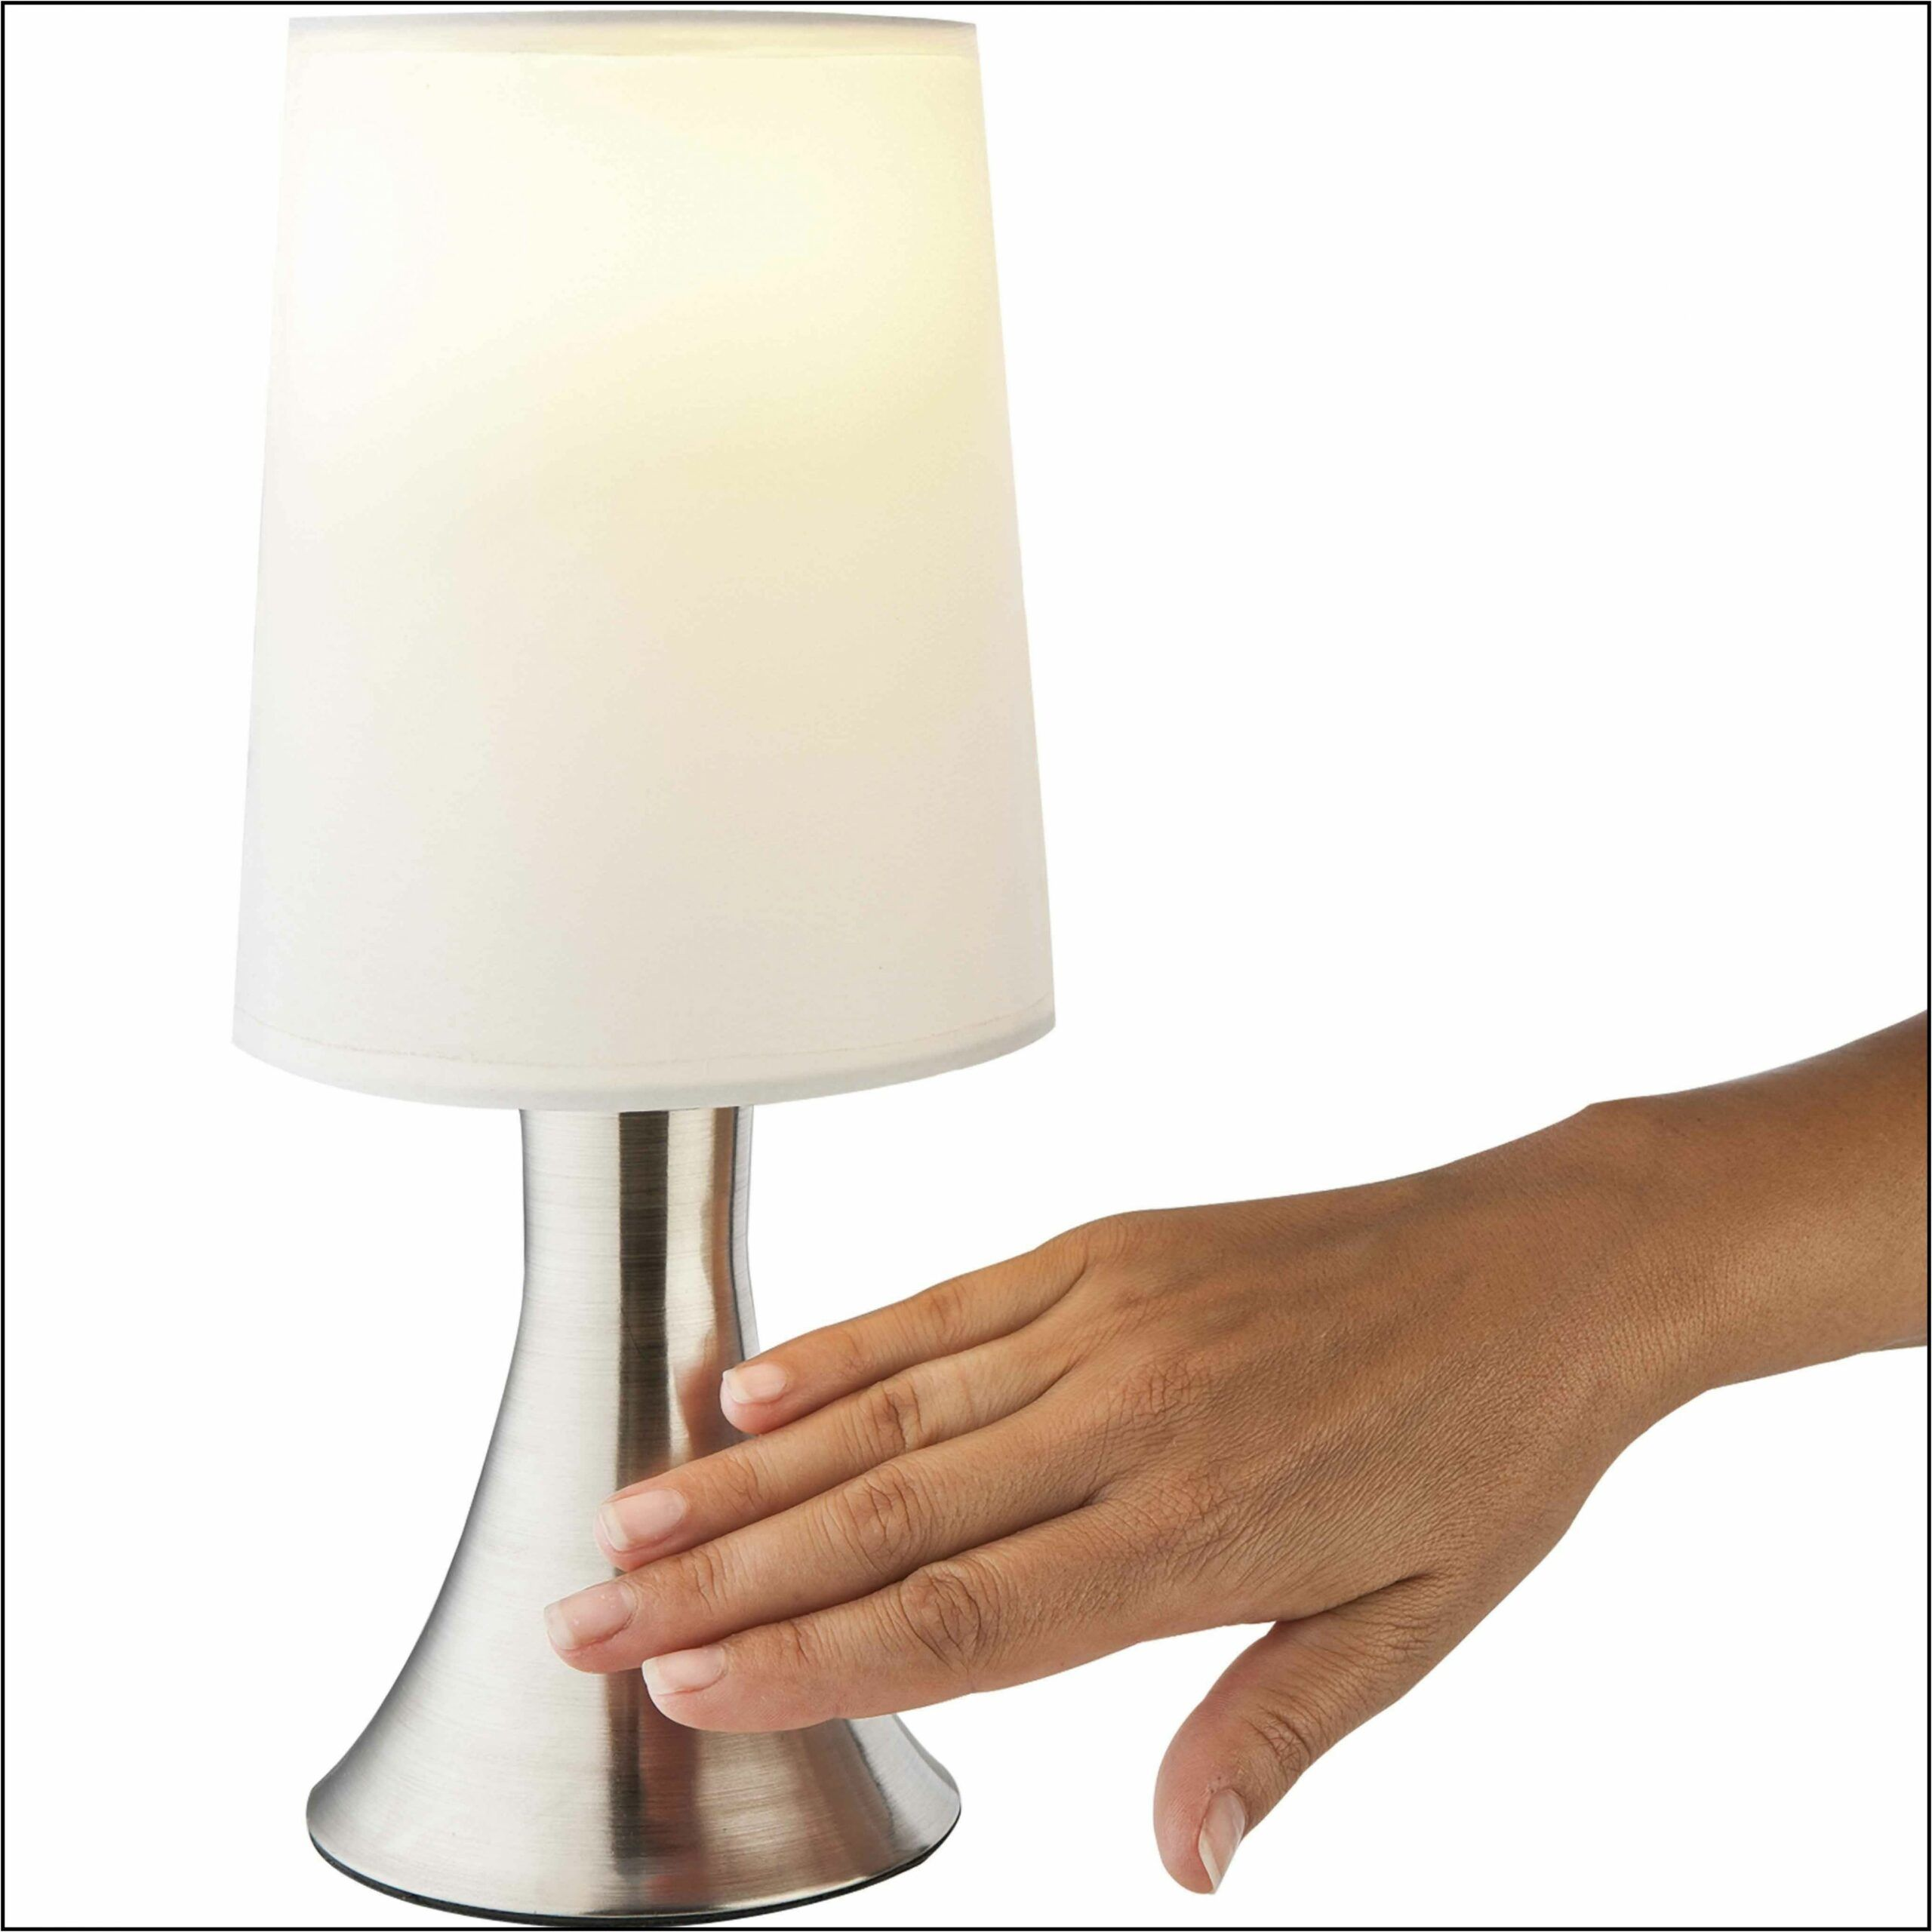 6 Ikea Lampe De Chevet In 2020 Lamp Touch Lamp Bedside Lamps Ikea